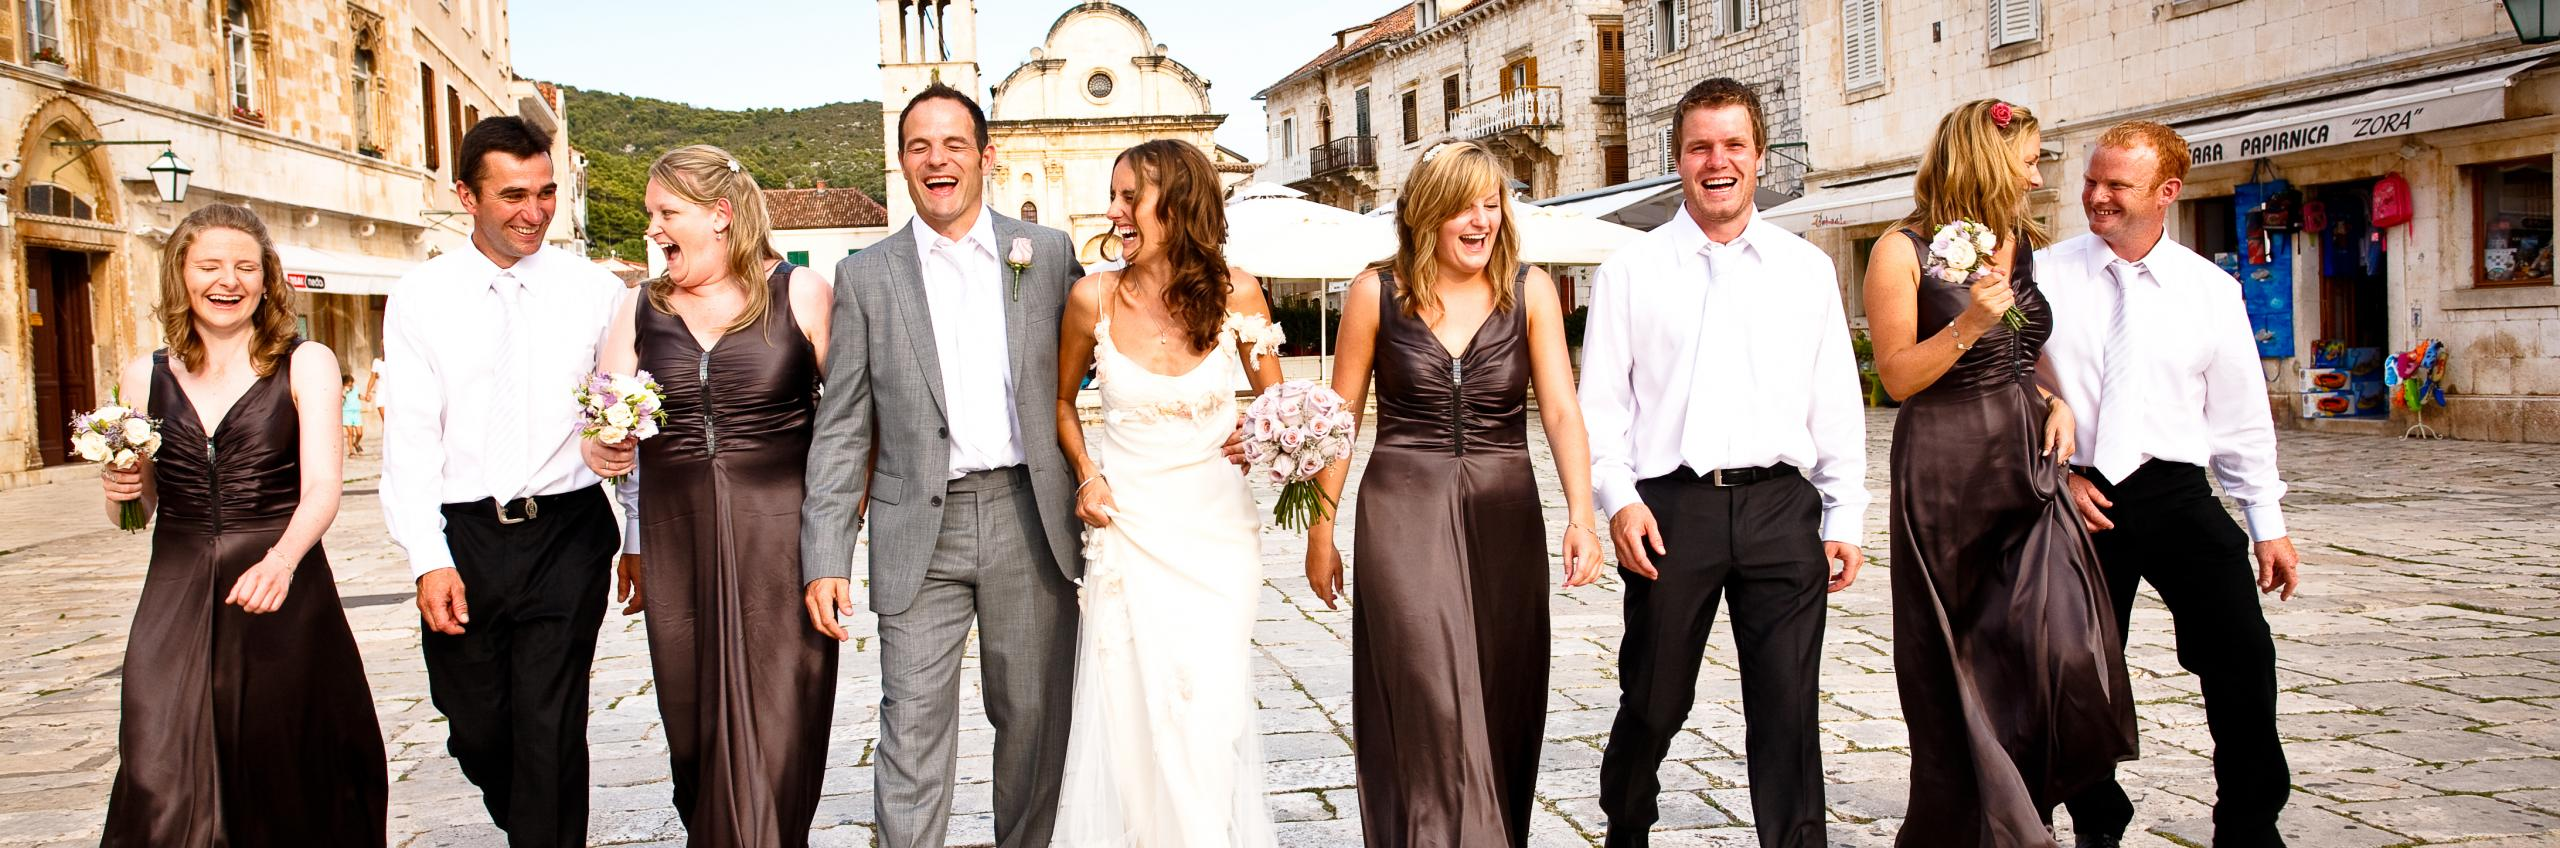 Destination wedding: Hvar